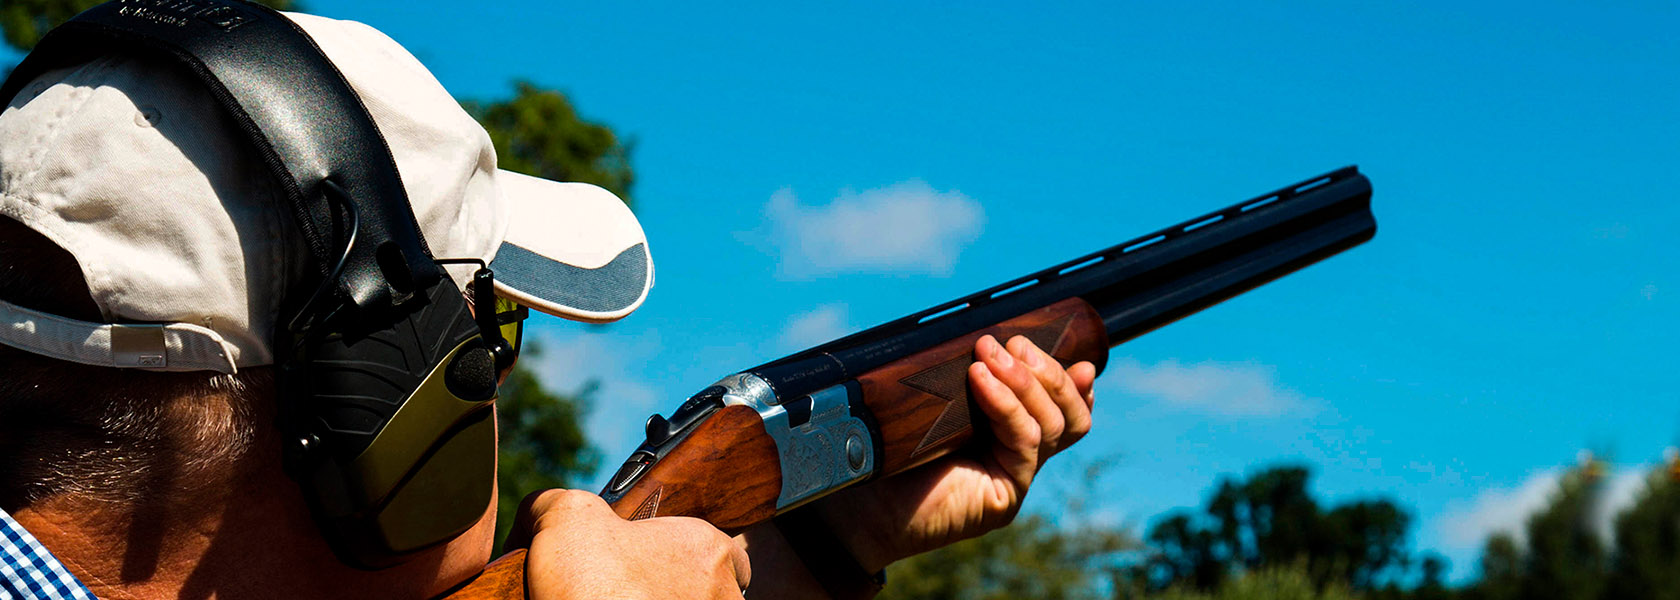 ClayShooting_1680px